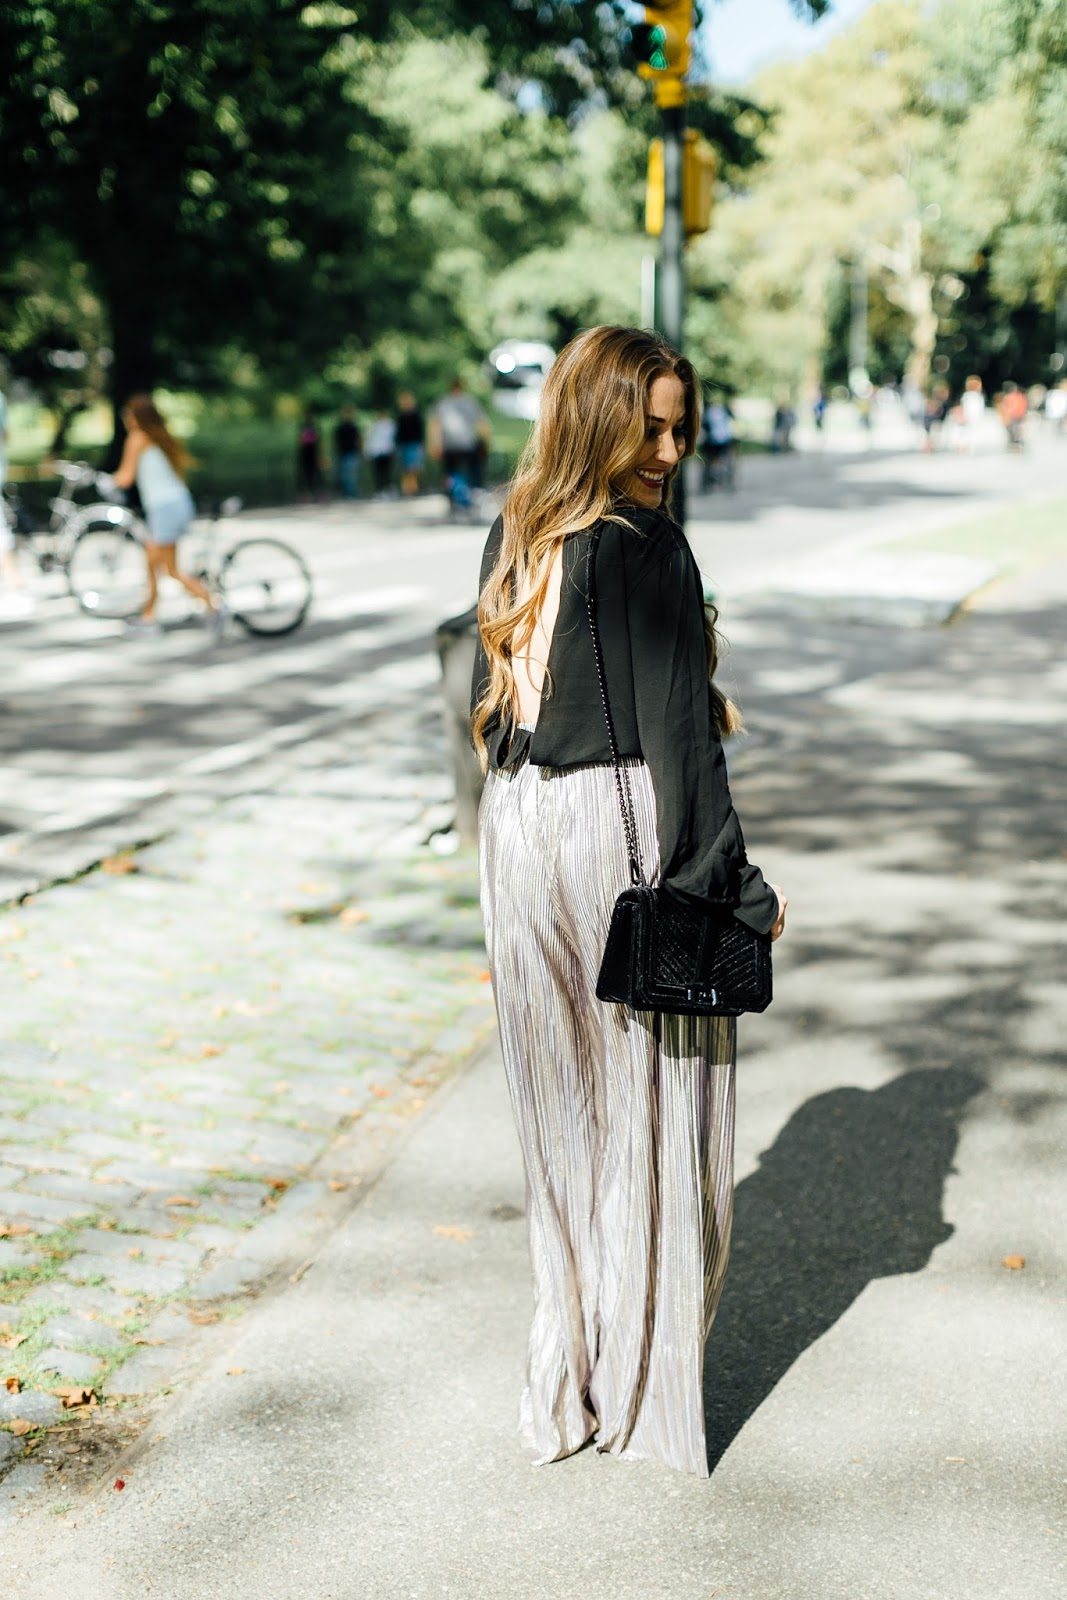 Things to Expect at New York Fashion Week by fashion blogger Walking in Memphis in High Heels